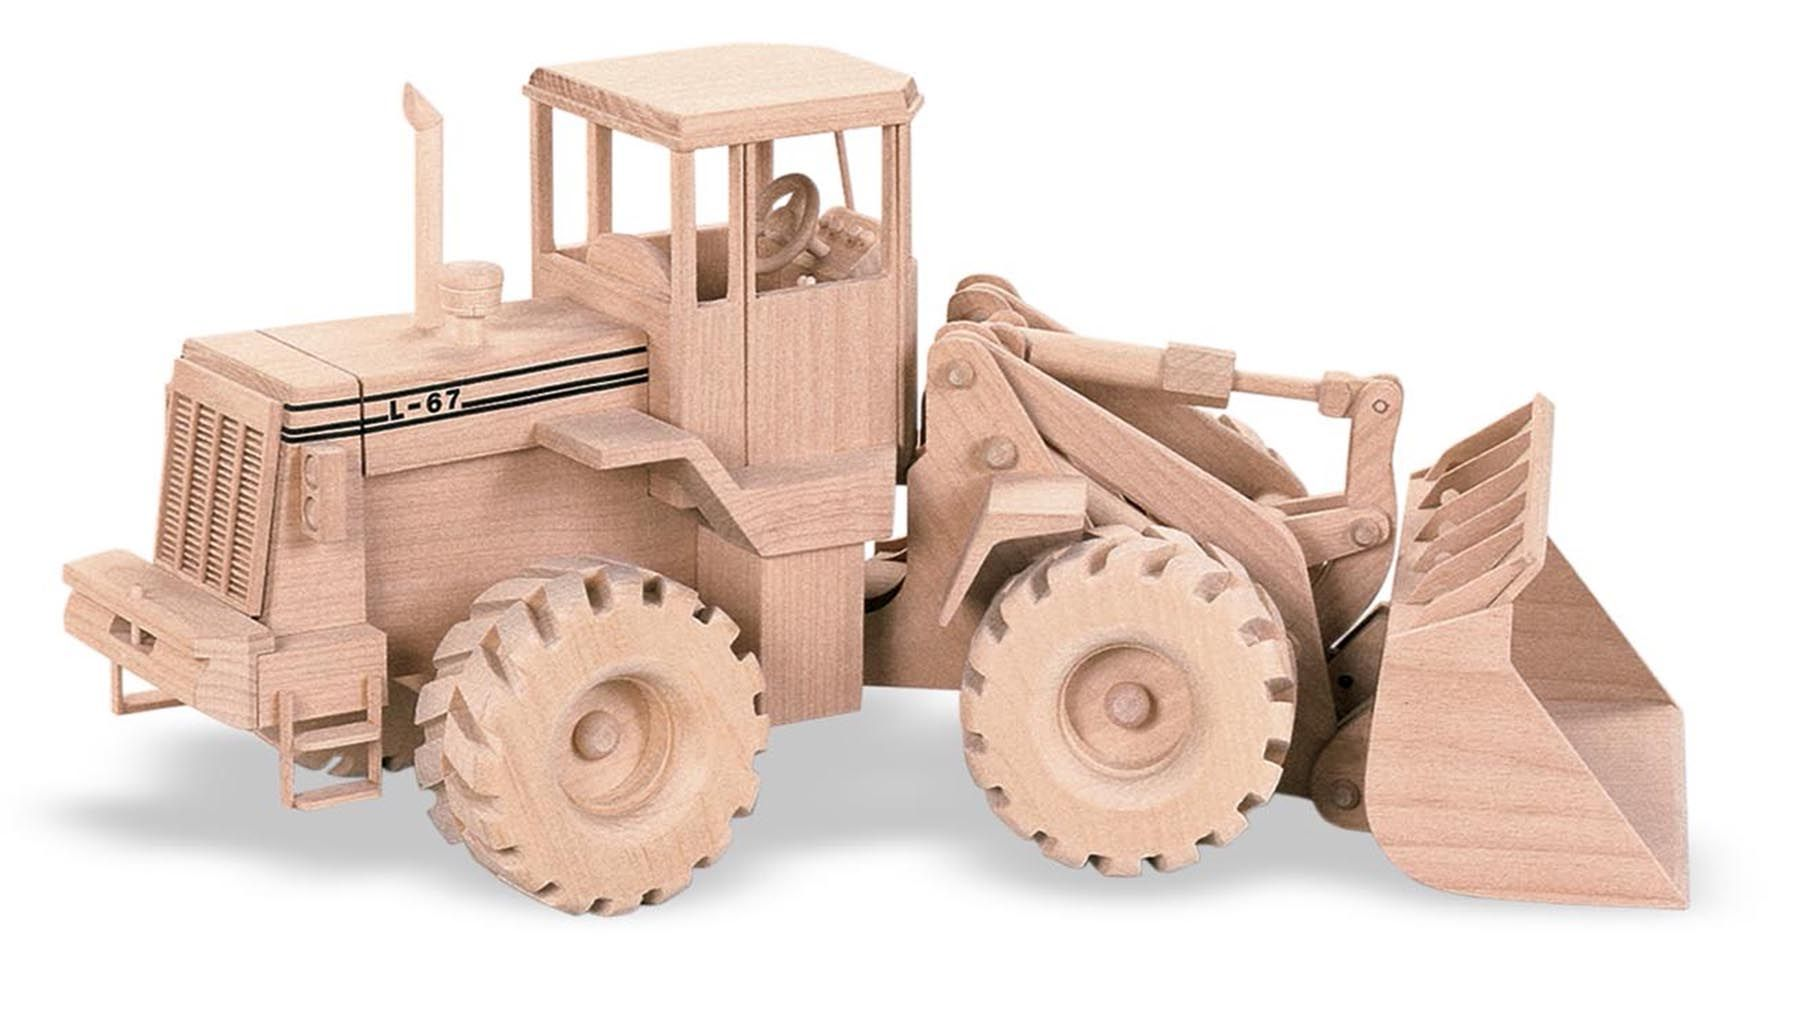 67 - the front end loader | wood toys | wood toys, wood toys